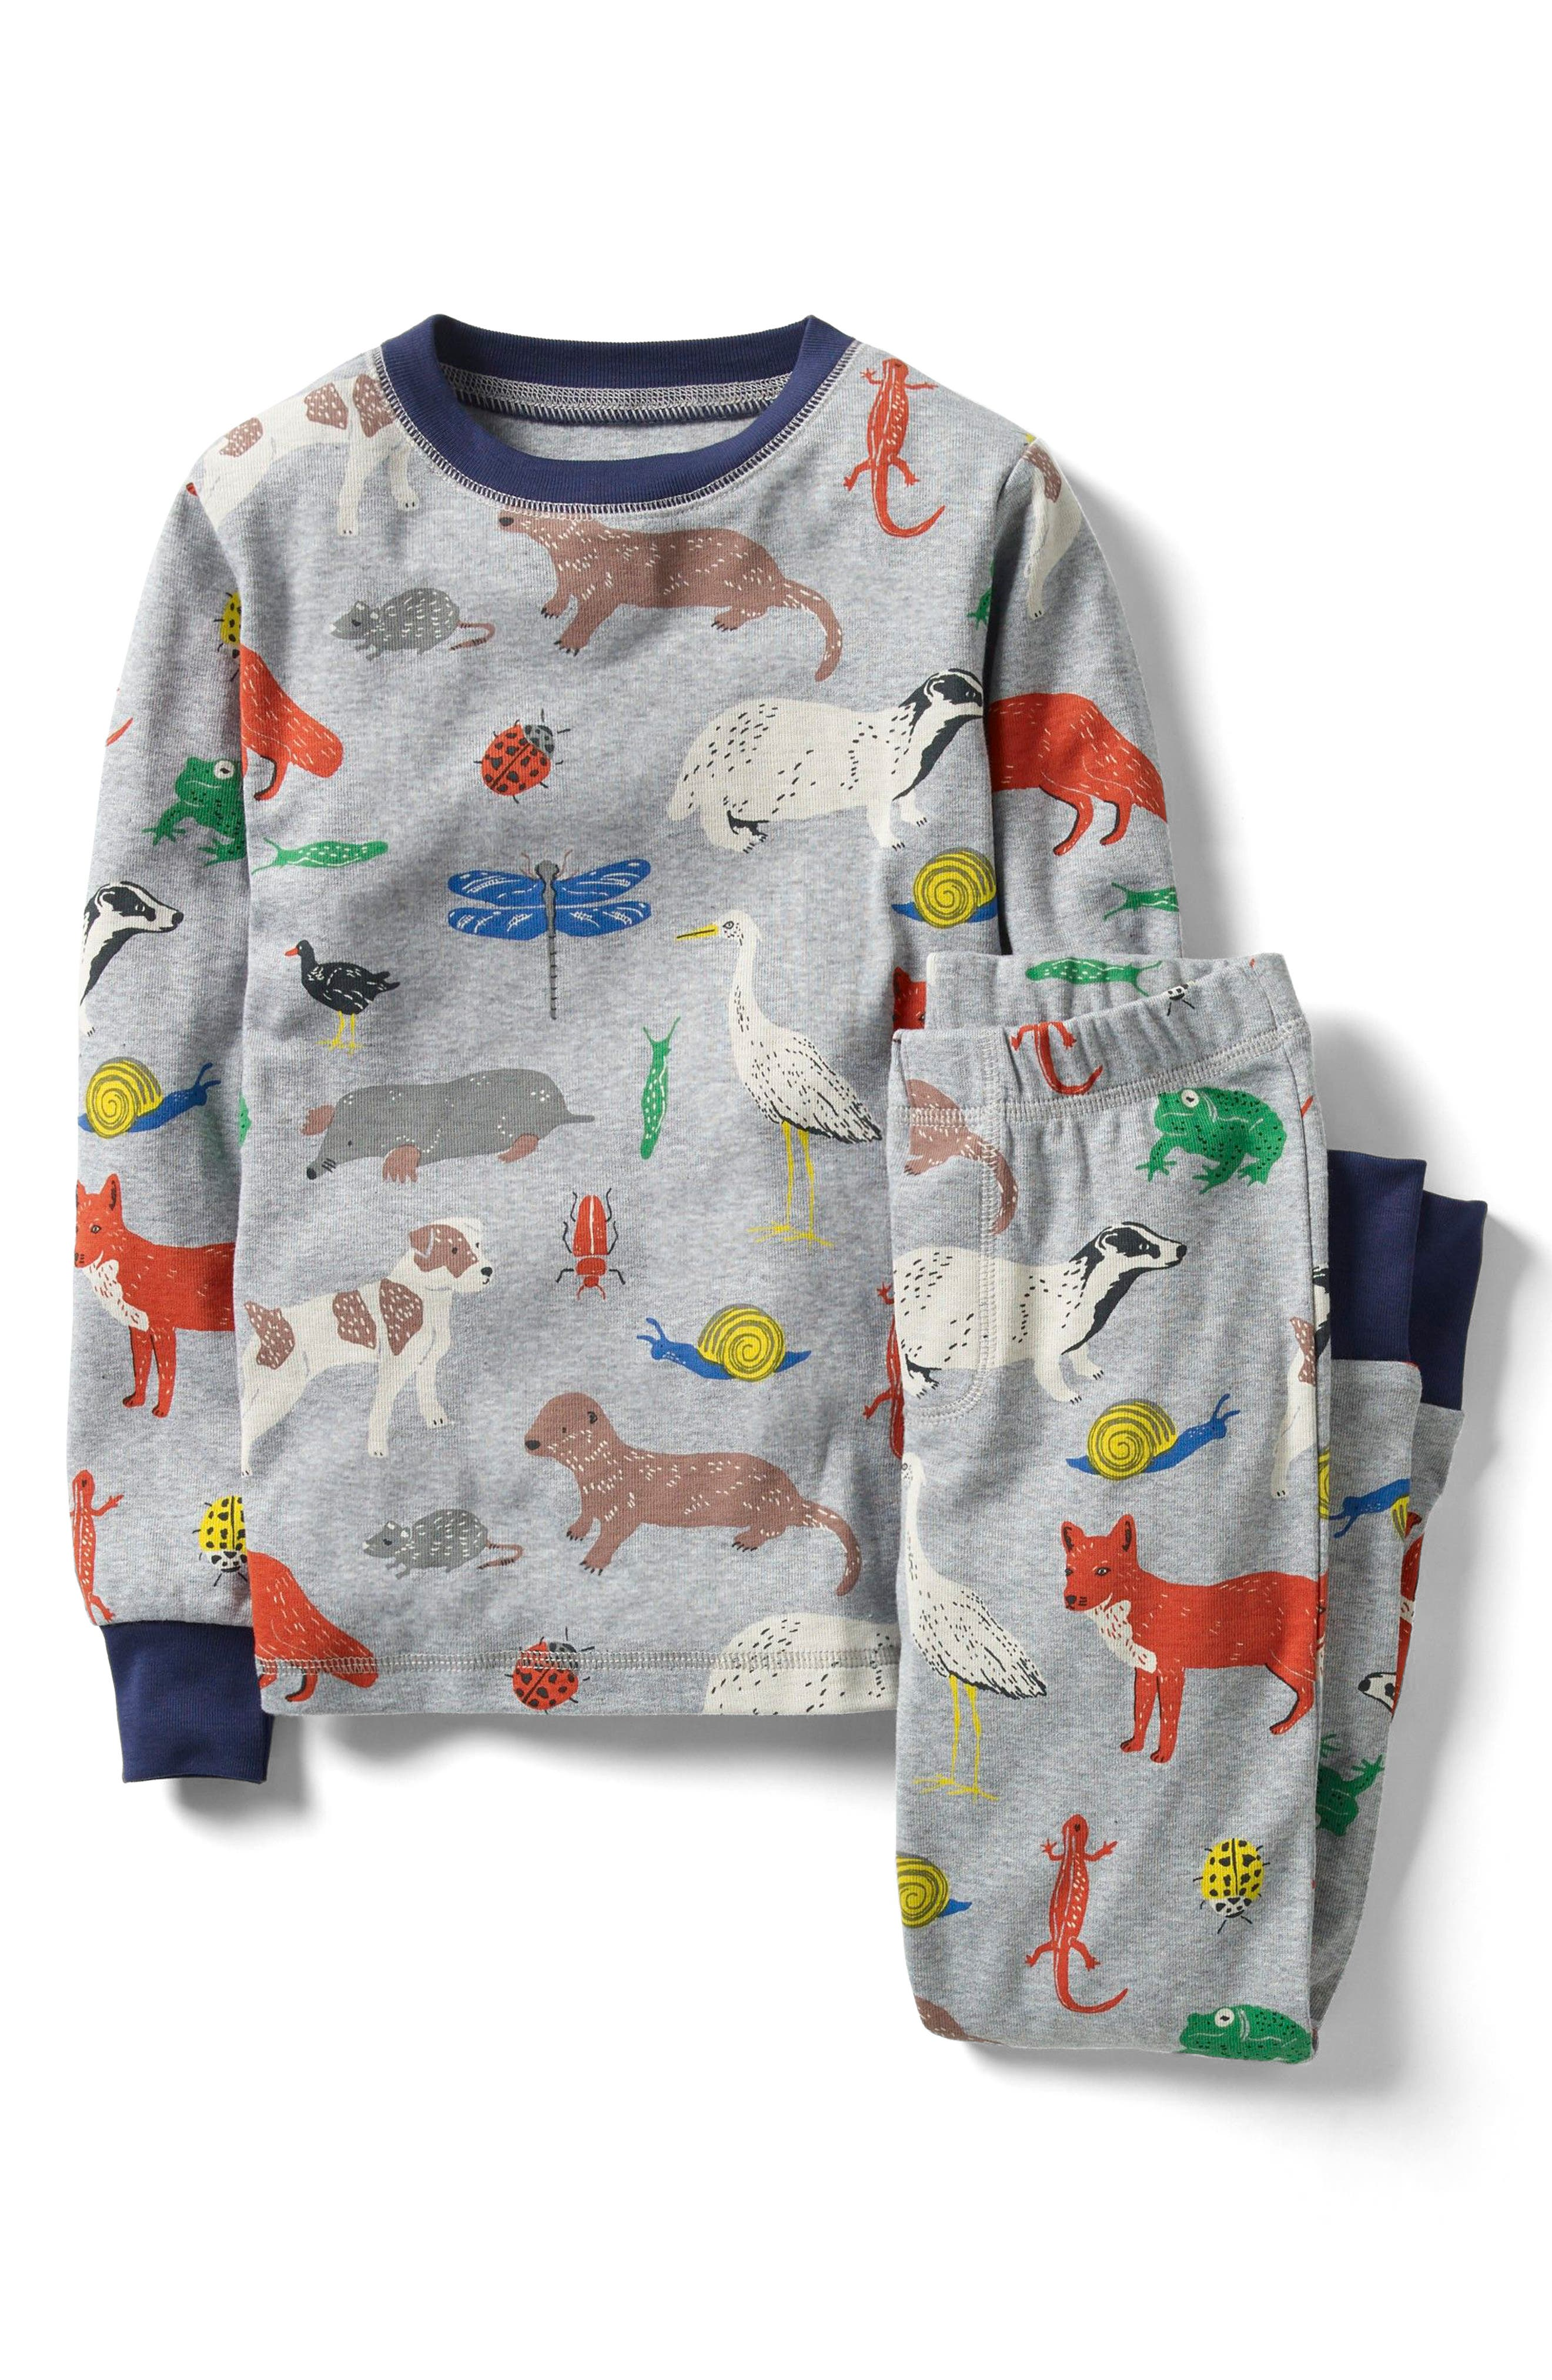 Main Image - Mini Boden Cosy Long Johns Fitted Two-Piece Pajamas (Little Boys & Big Boys)